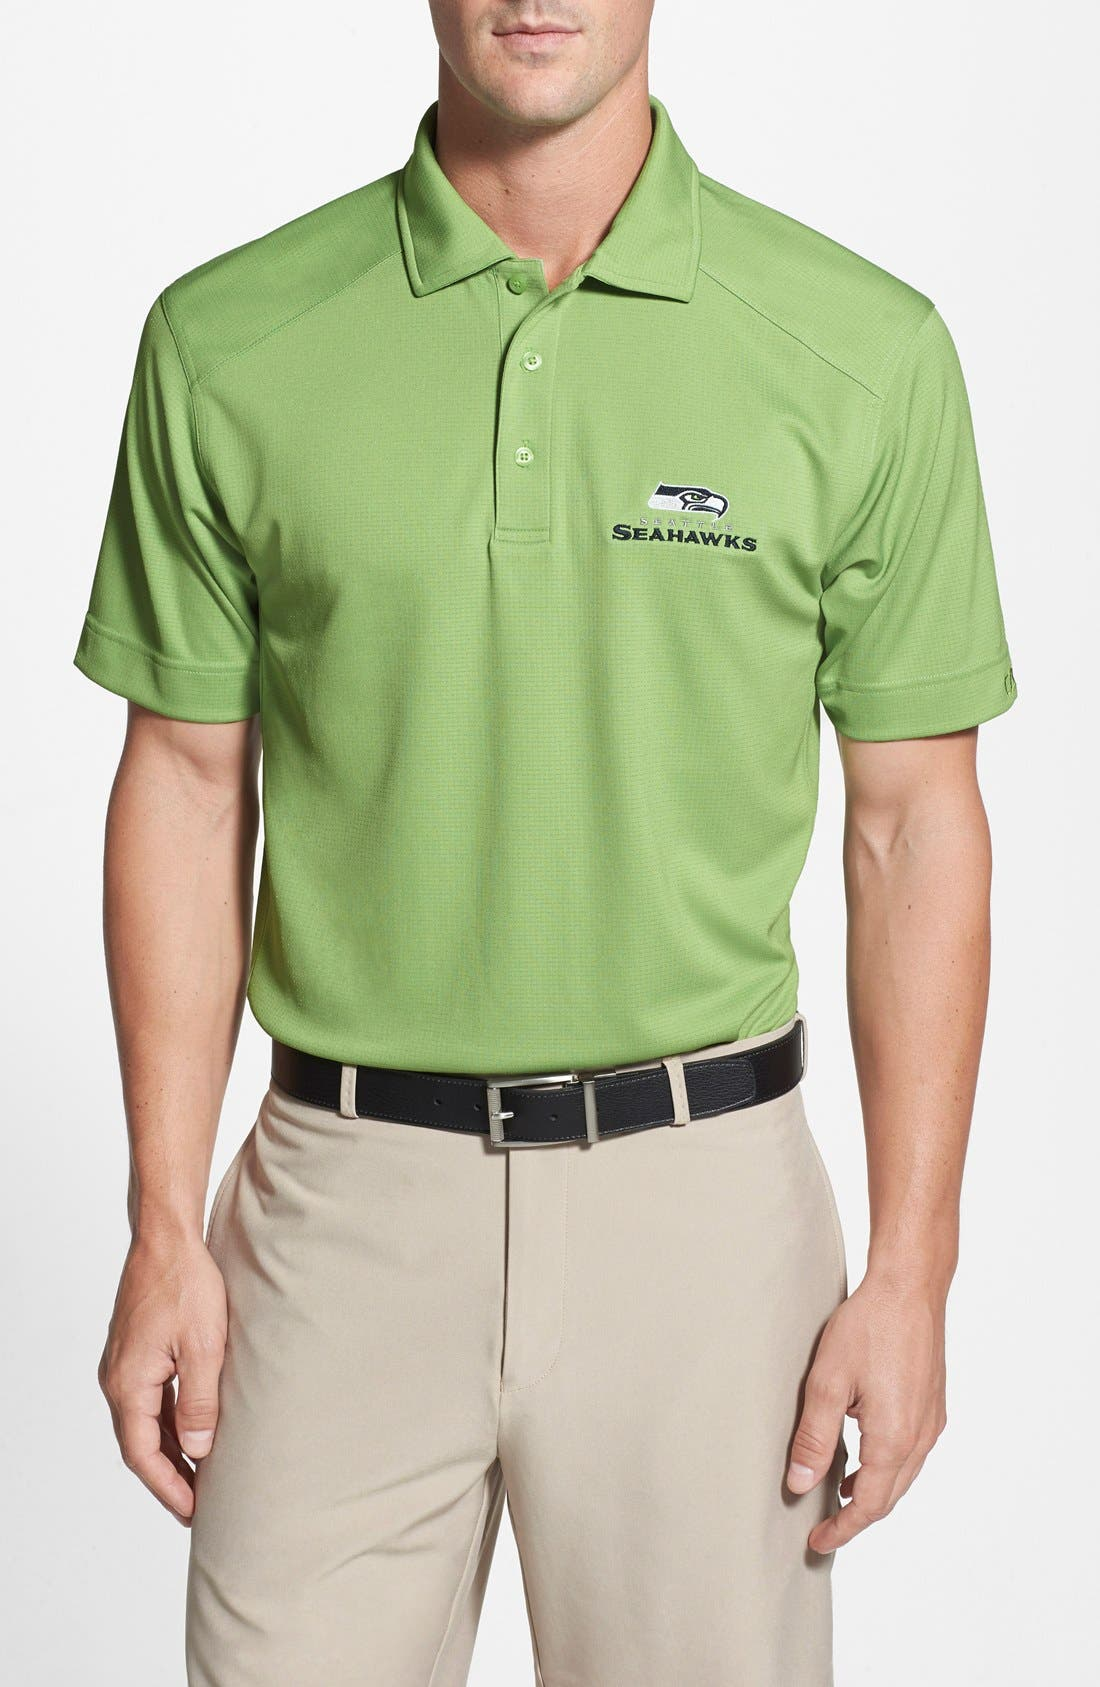 Seattle Seahawks - Genre DryTec Moisture Wicking Polo,                         Main,                         color, 333